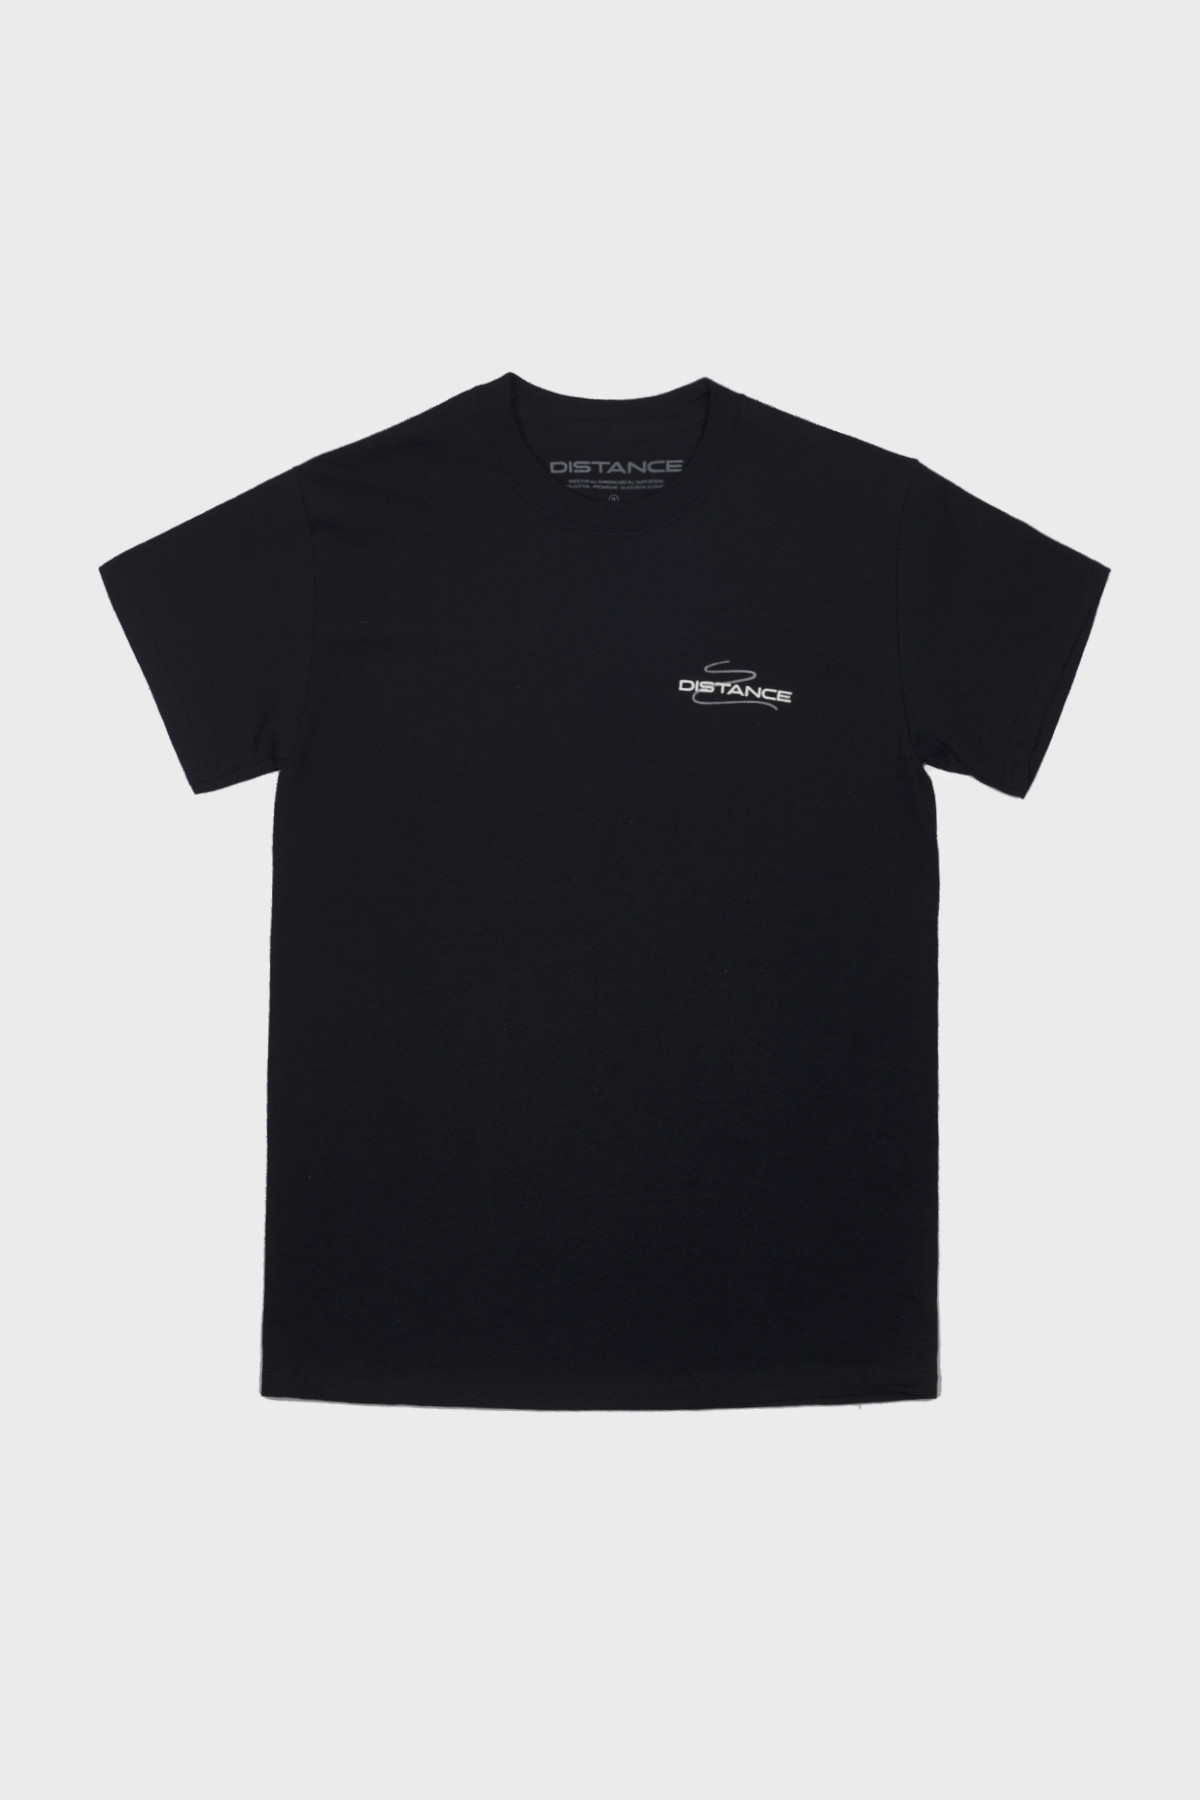 Distance - Squiggle Tee - Black Grey